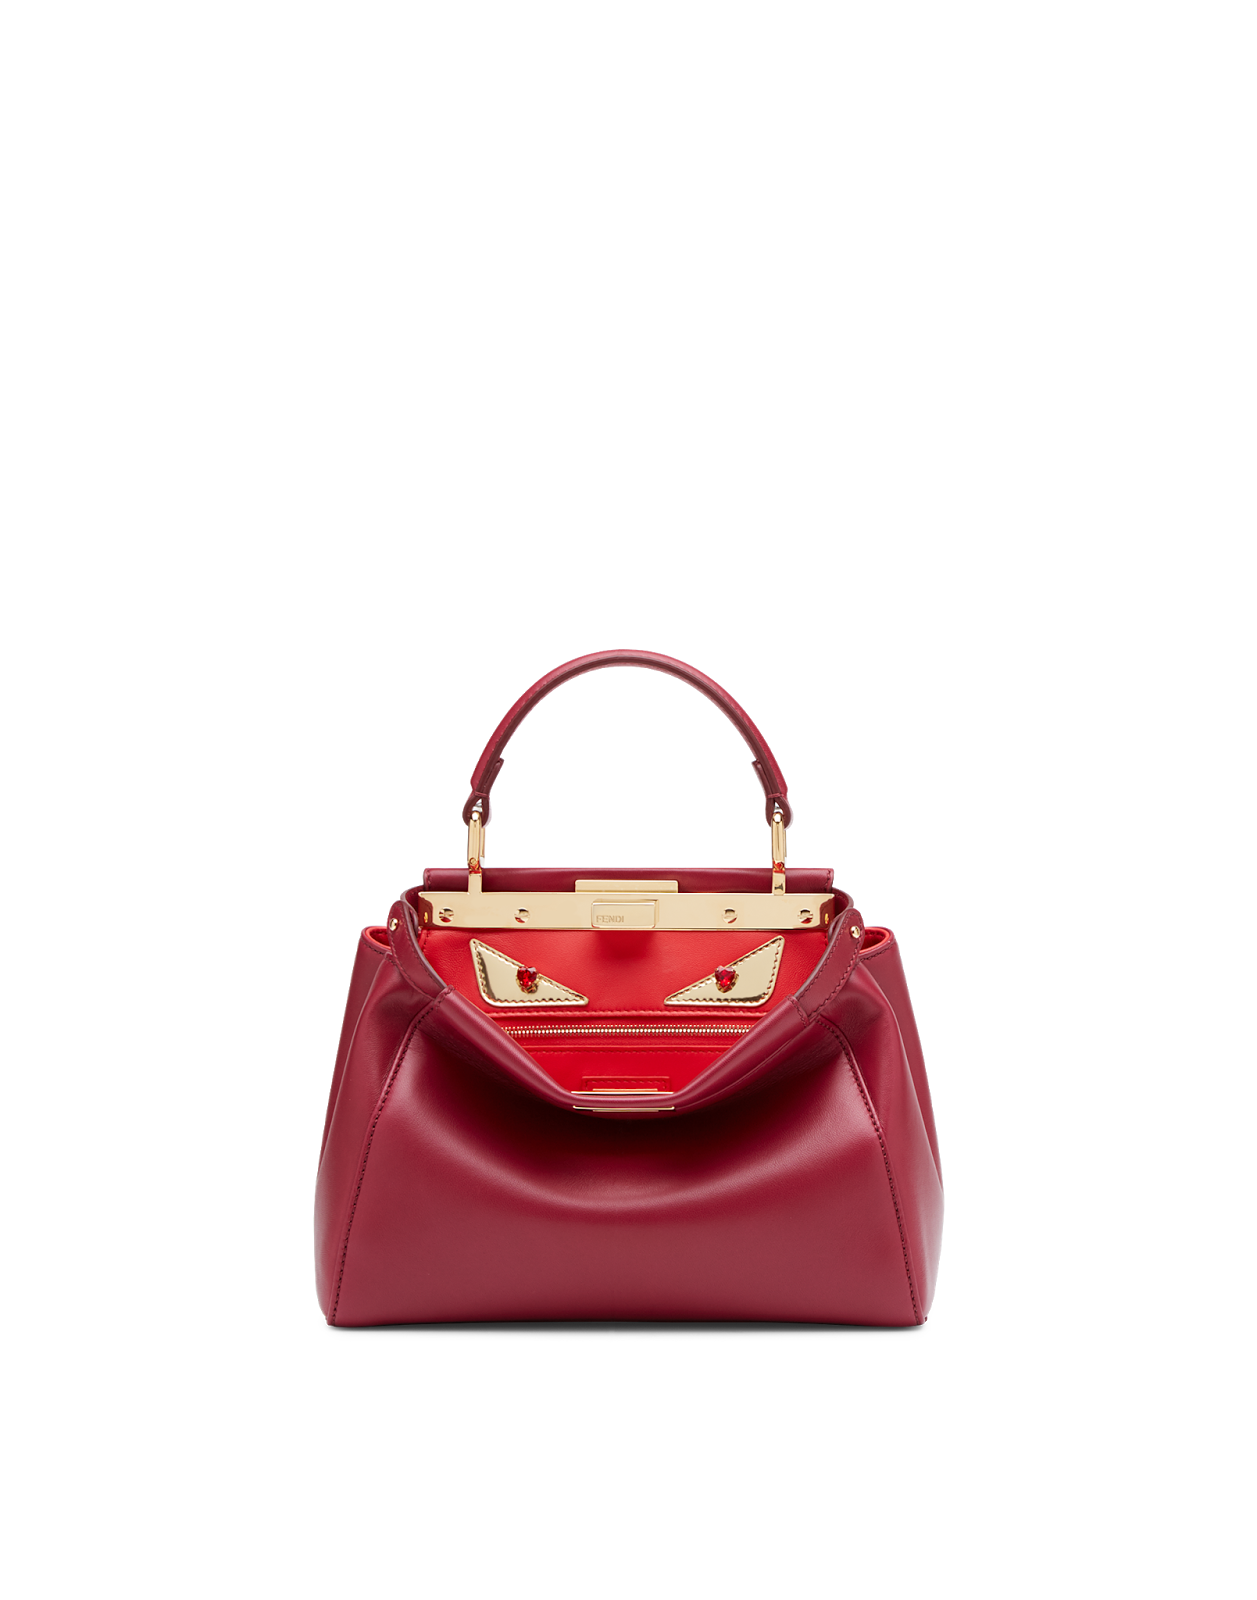 Fendi's Chinese New Year & Valentine's Day Capsule Collection